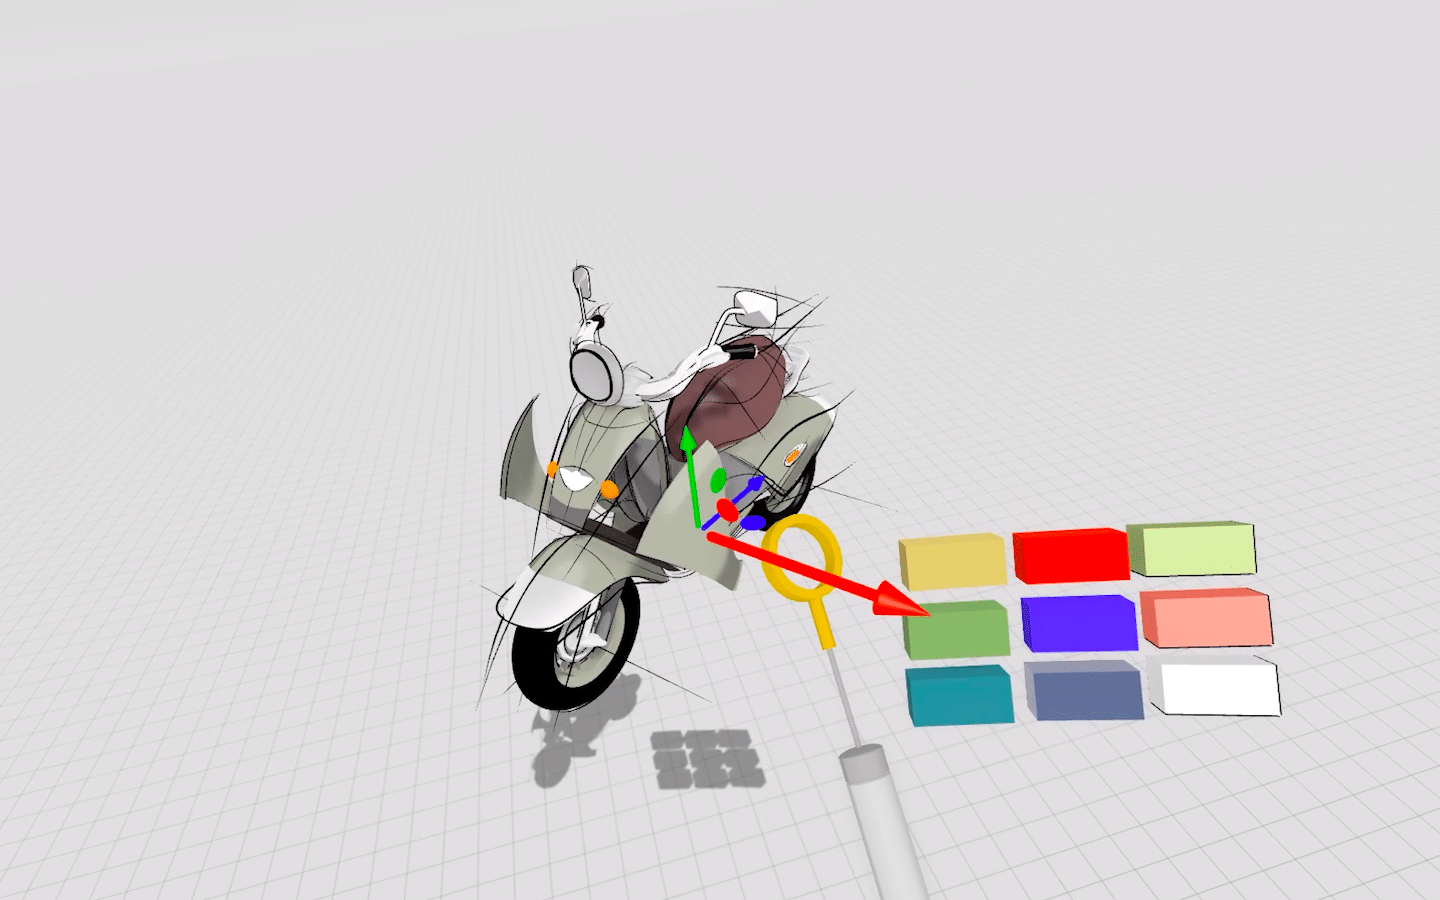 New tool belt in Gravity Sketch with scooter bike design, color palette and realistic measuring tape graphics